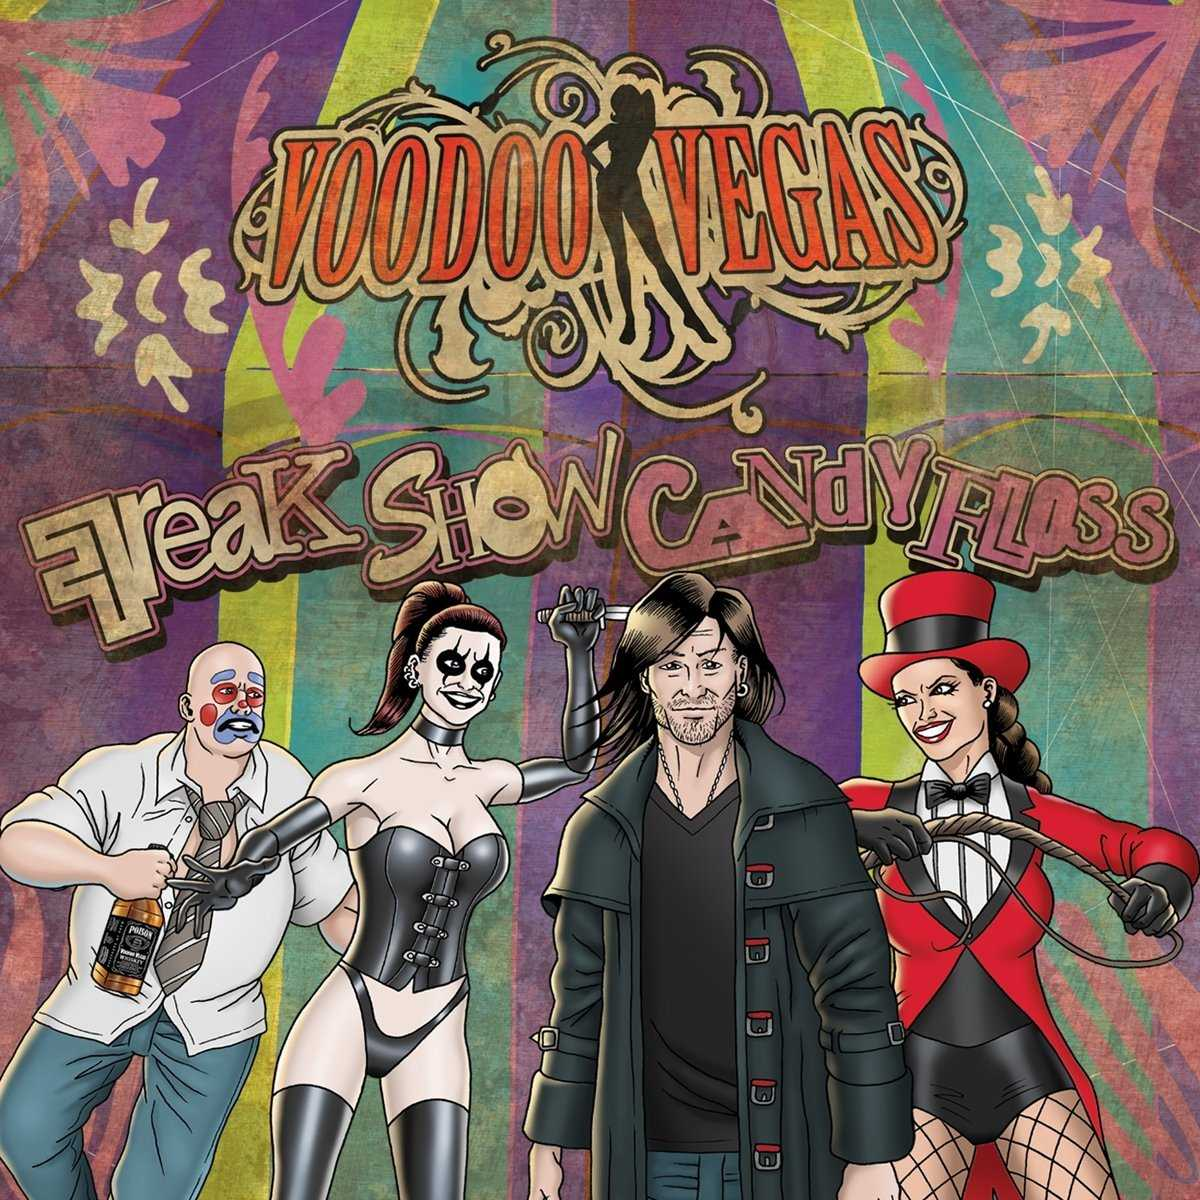 Voodoo Vegas: Freak Show Candy Floss (2016) Book Cover